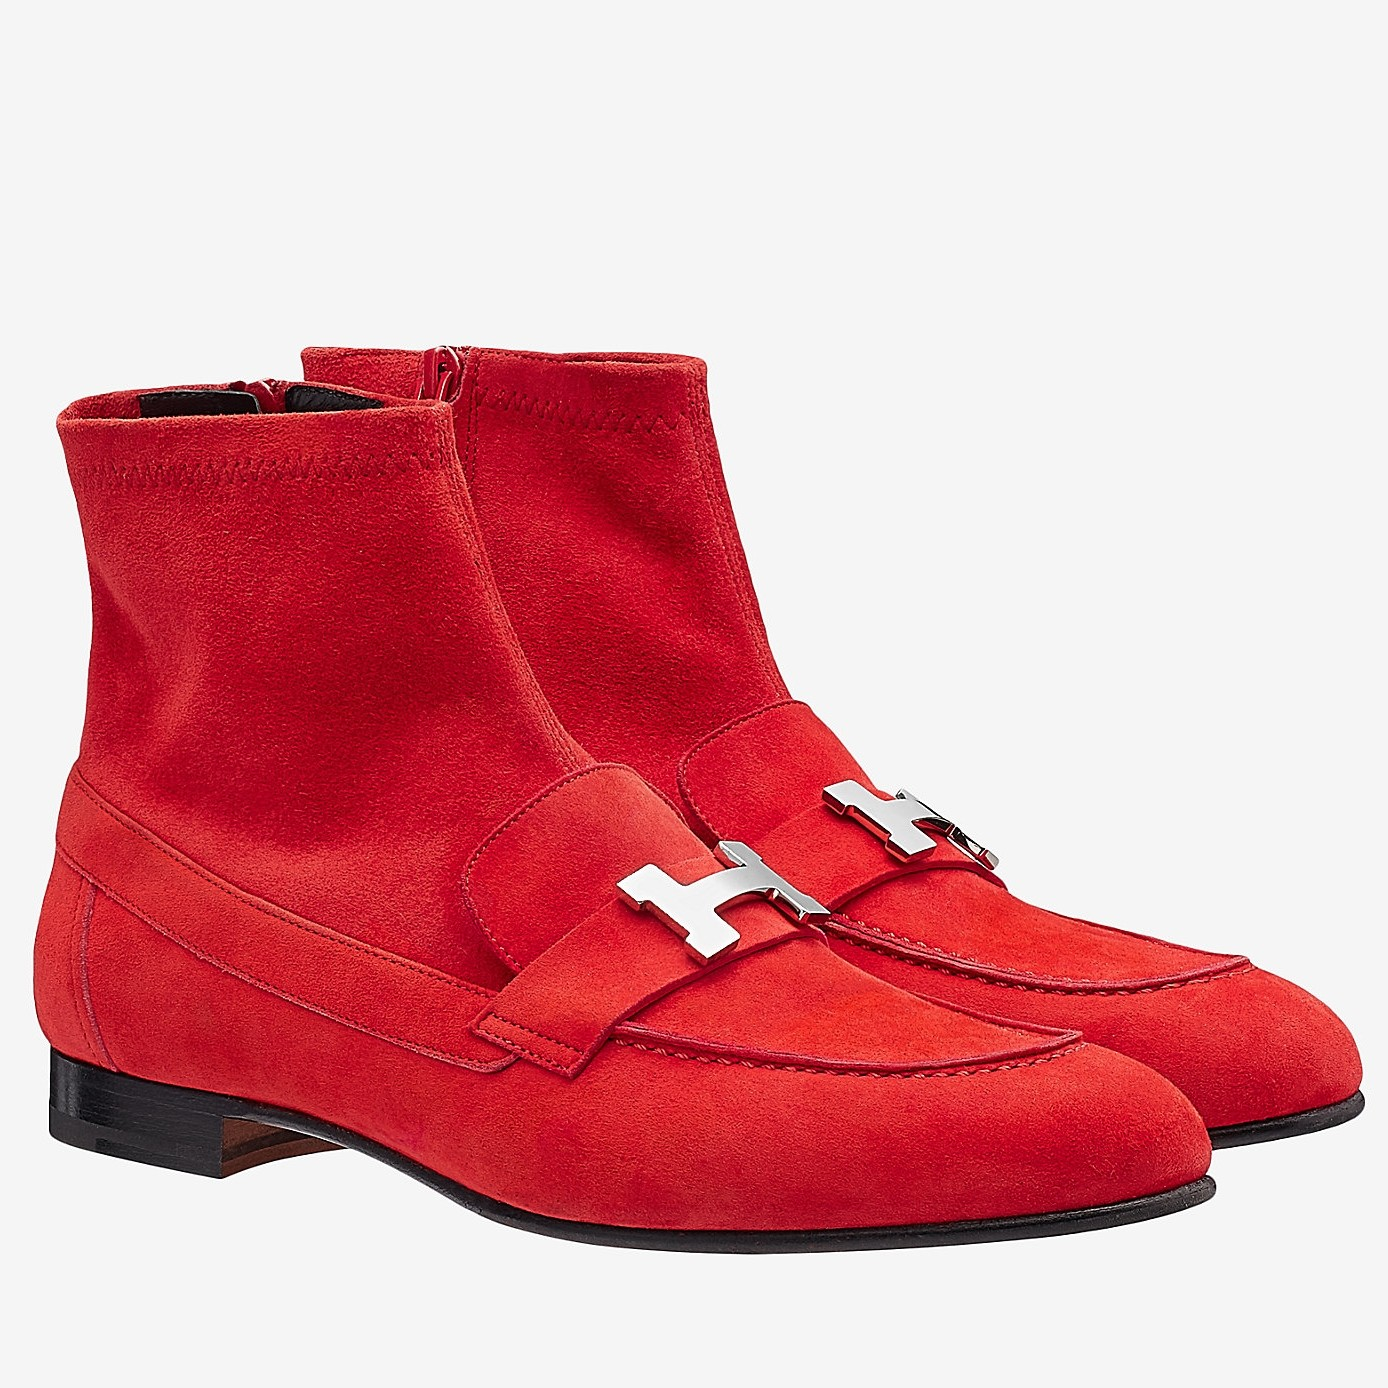 Hermes Red Saint Honore Ankle Boots